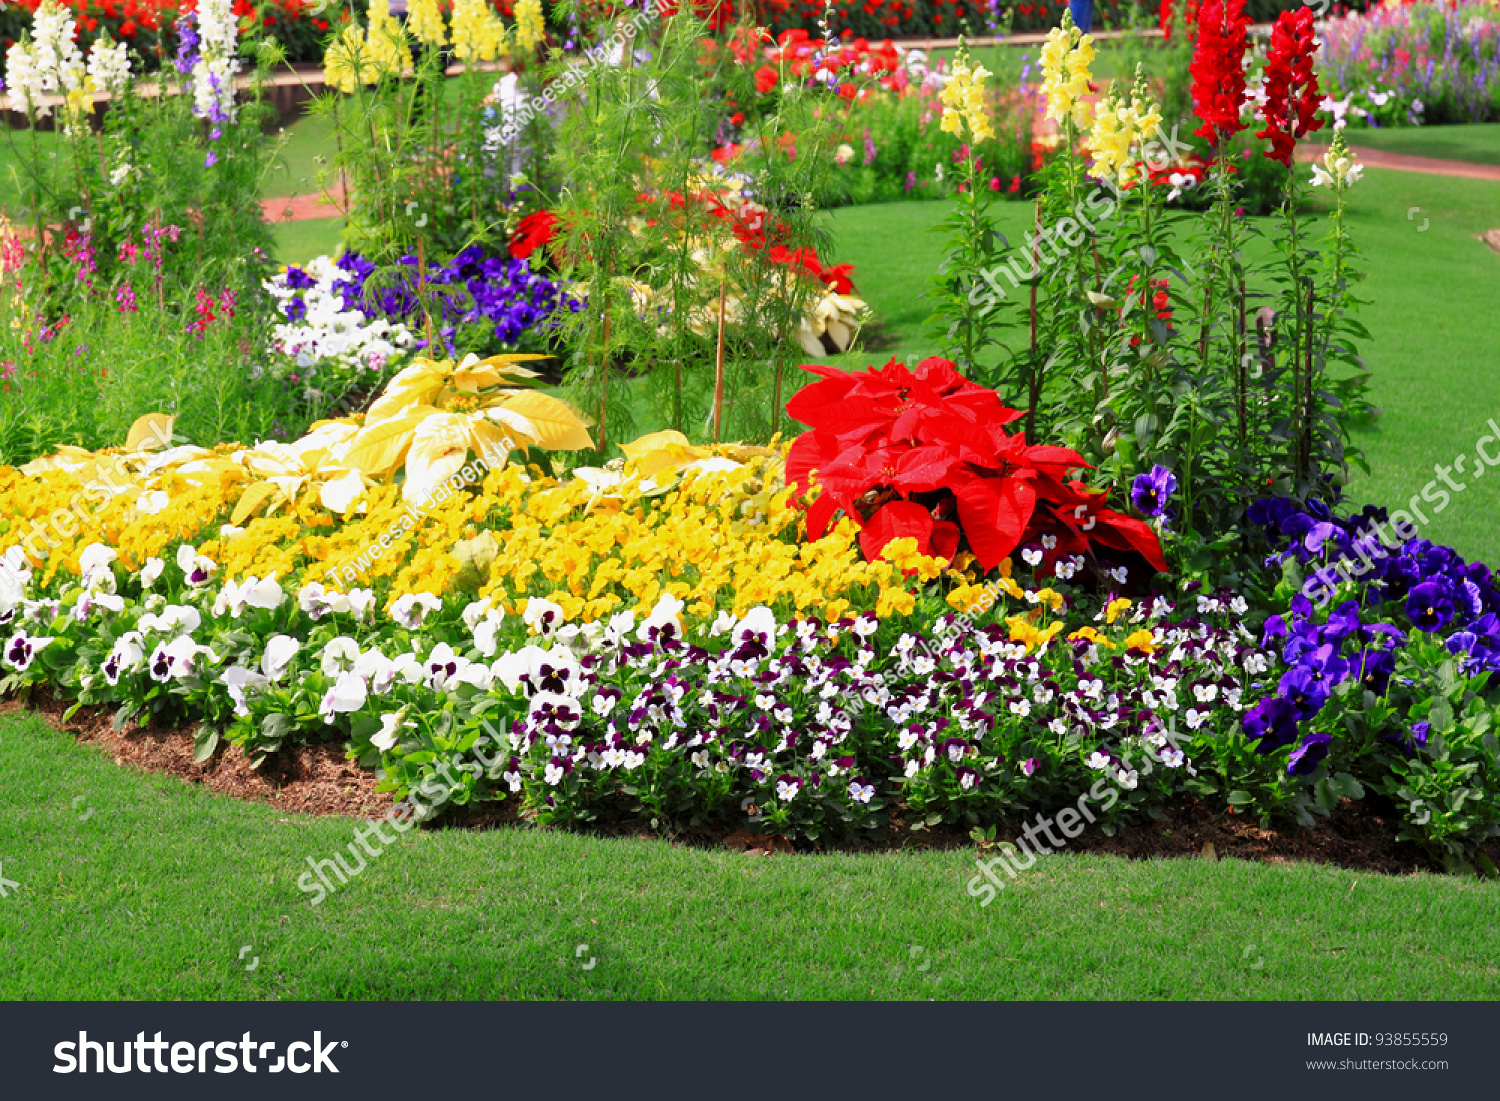 Flower garden background stock photo 93855559 shutterstock for Flowers and gardens pictures